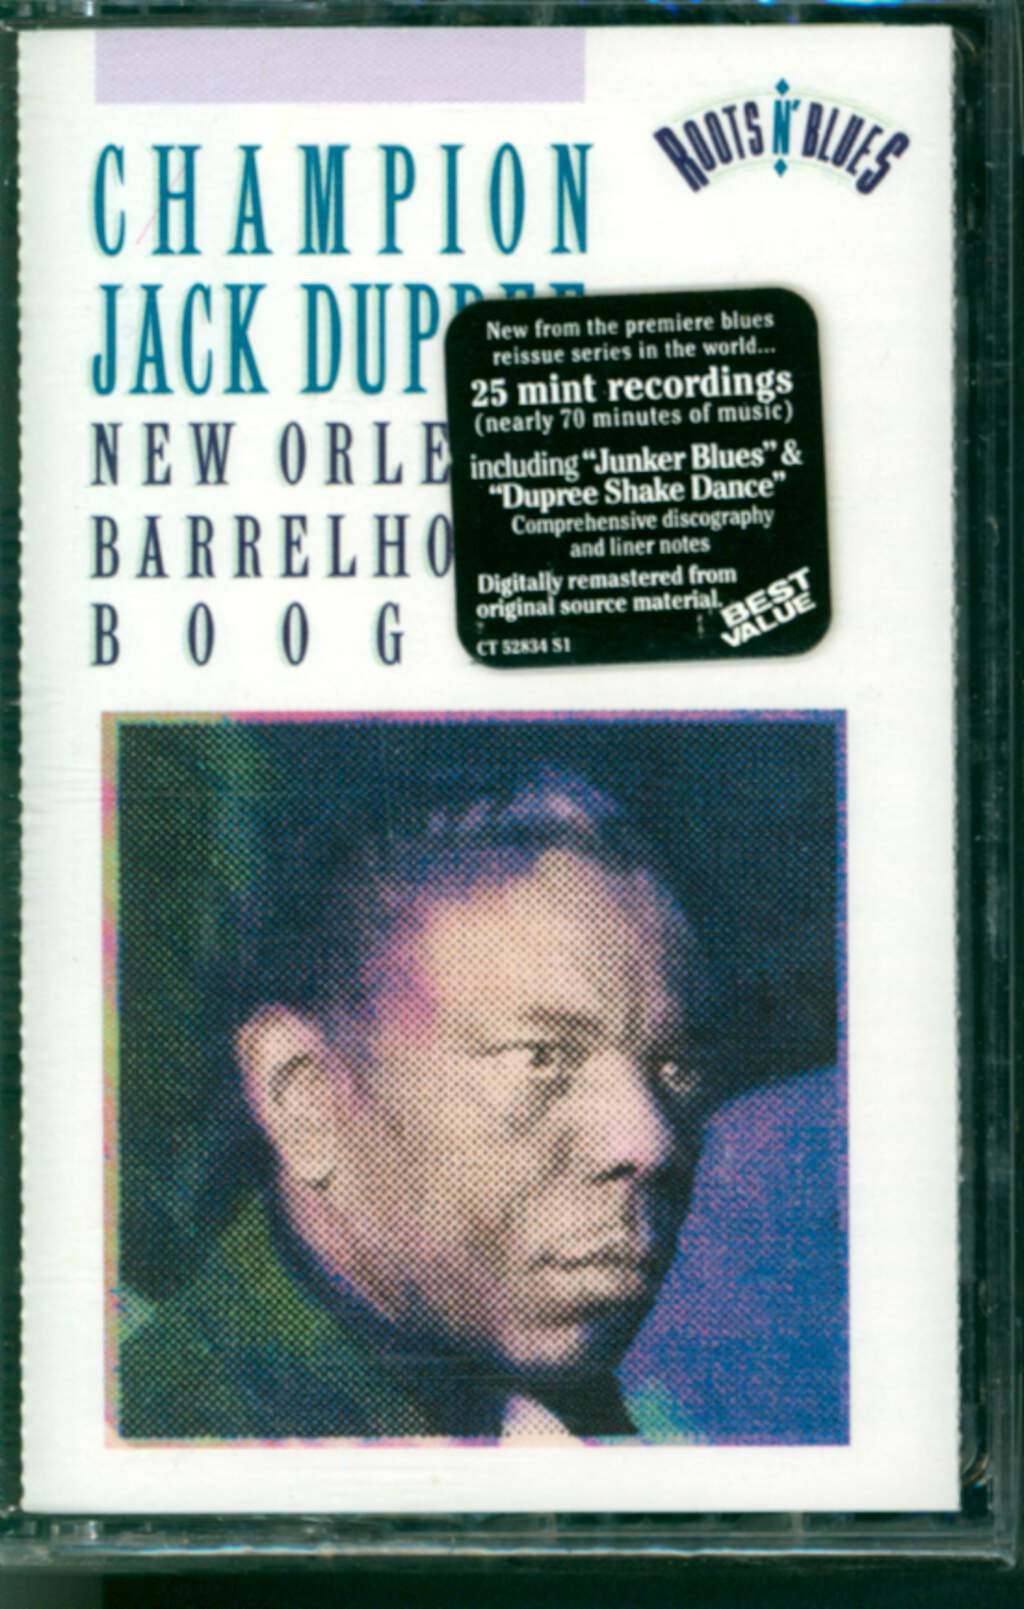 Champion Jack Dupree: New Orleans Barrelhouse Boogie, Tape